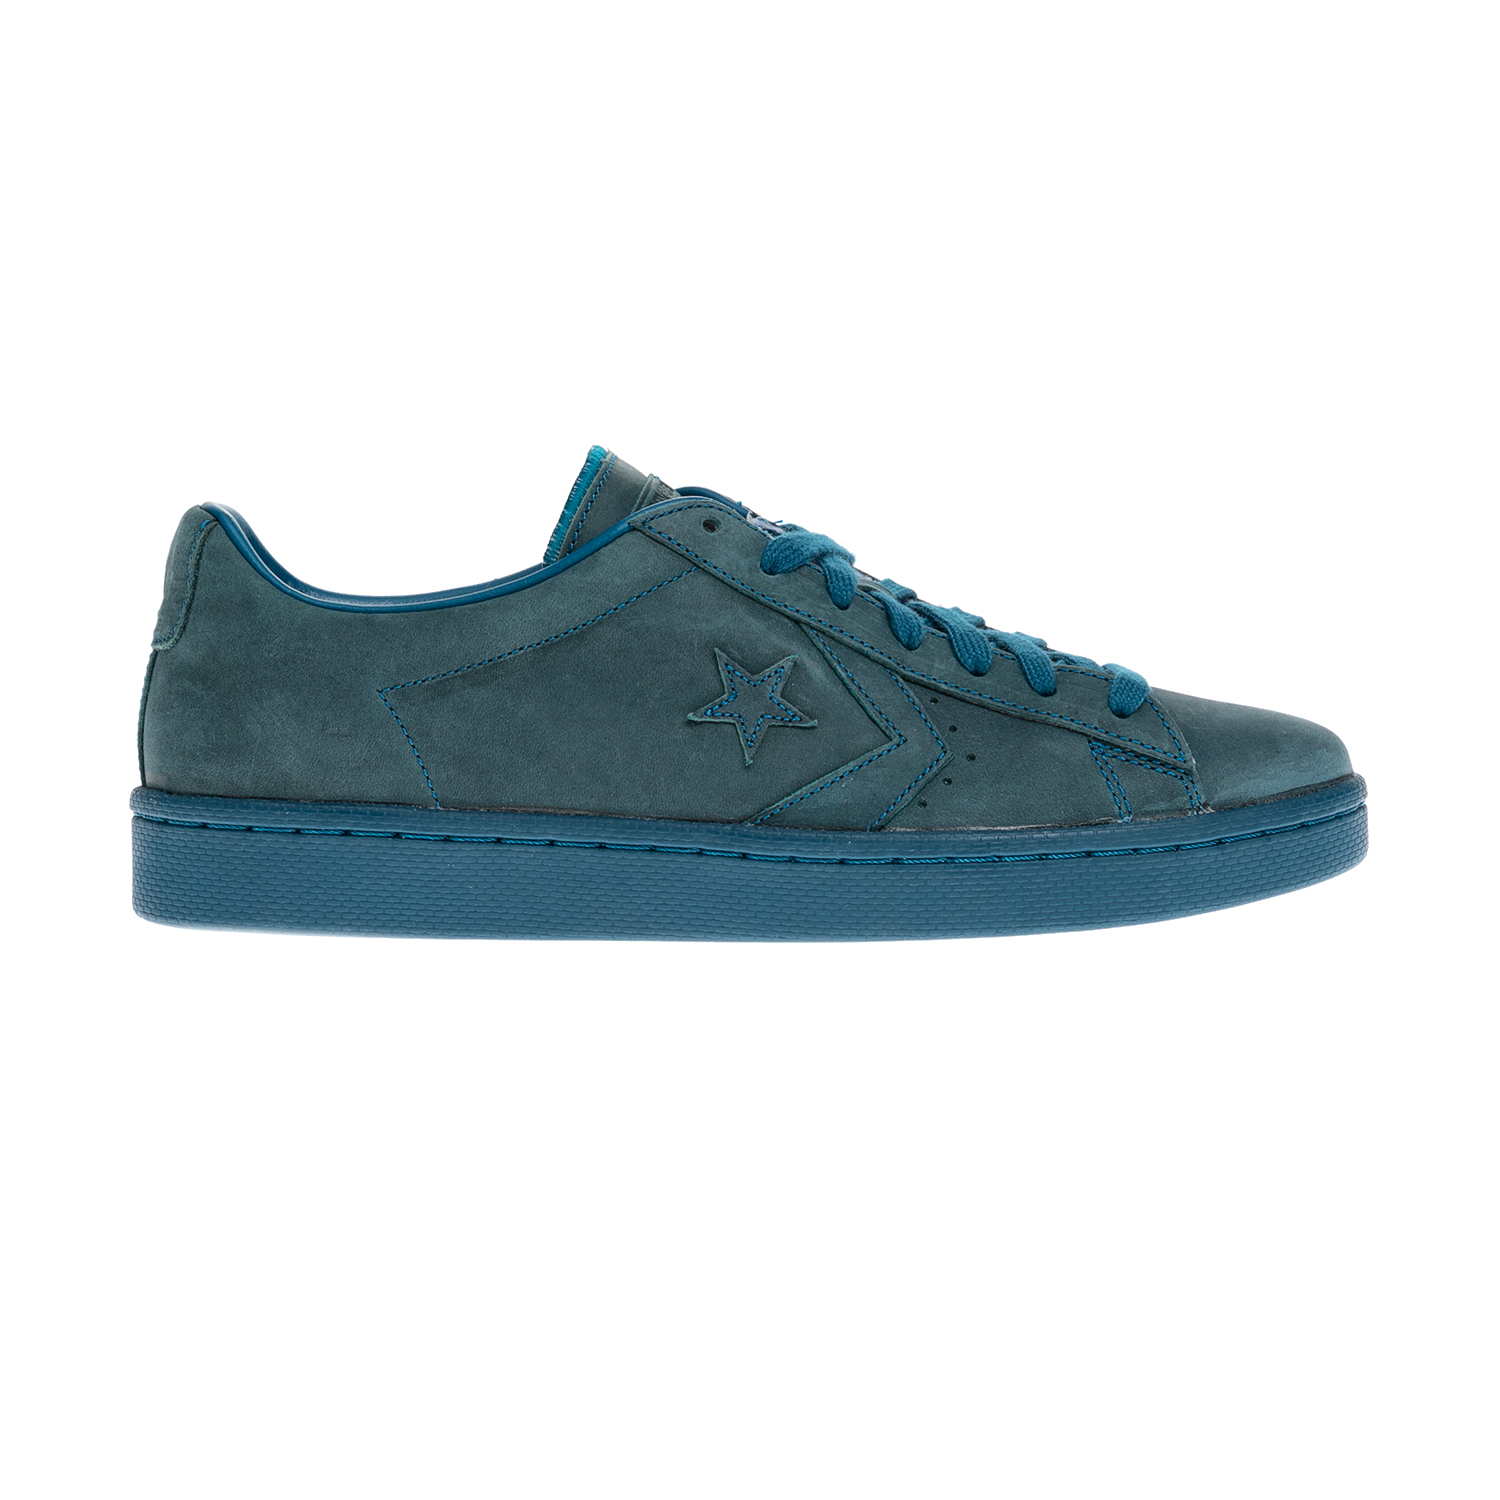 CONVERSE – Unisex παπούτσια QS PRO LEATHER MONO OX μπλε